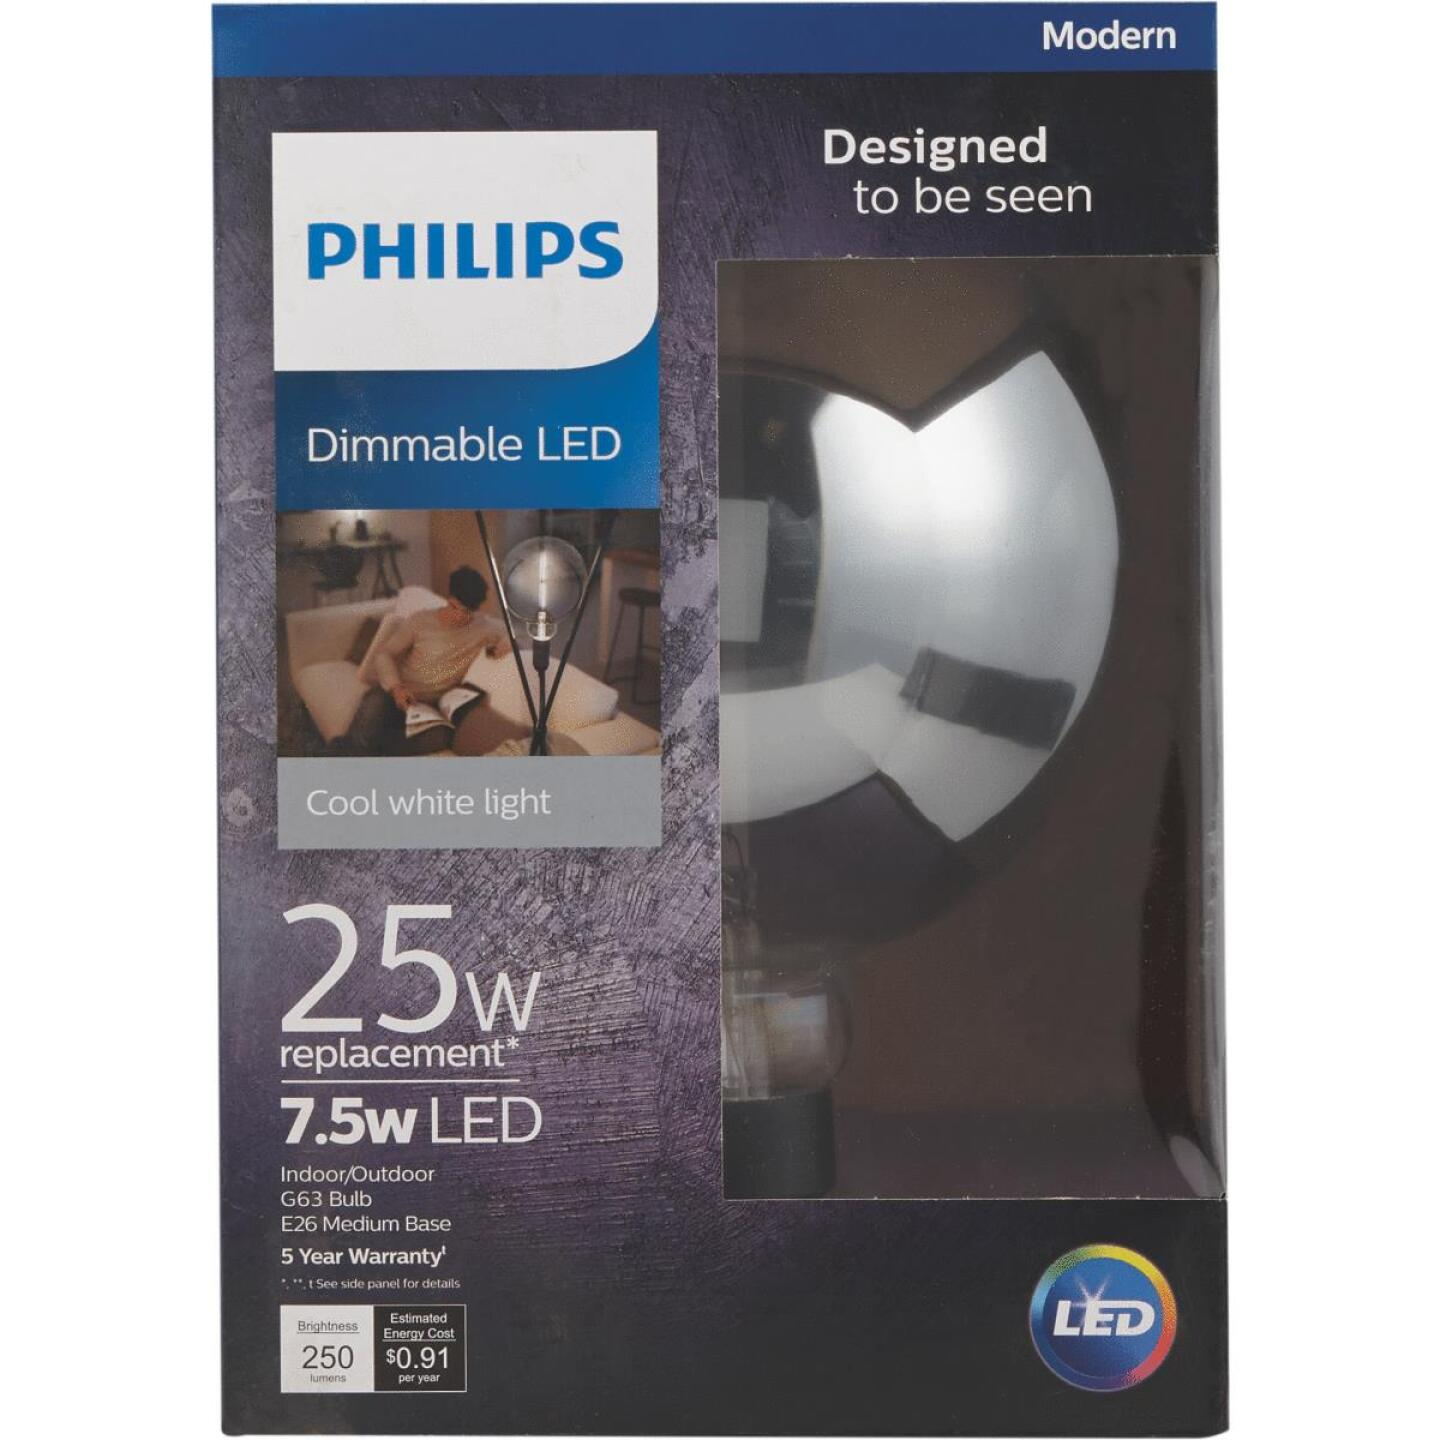 Philips Modern 25W Equivalent Cool White G63 Medium LED Decorative Light Bulb Image 3